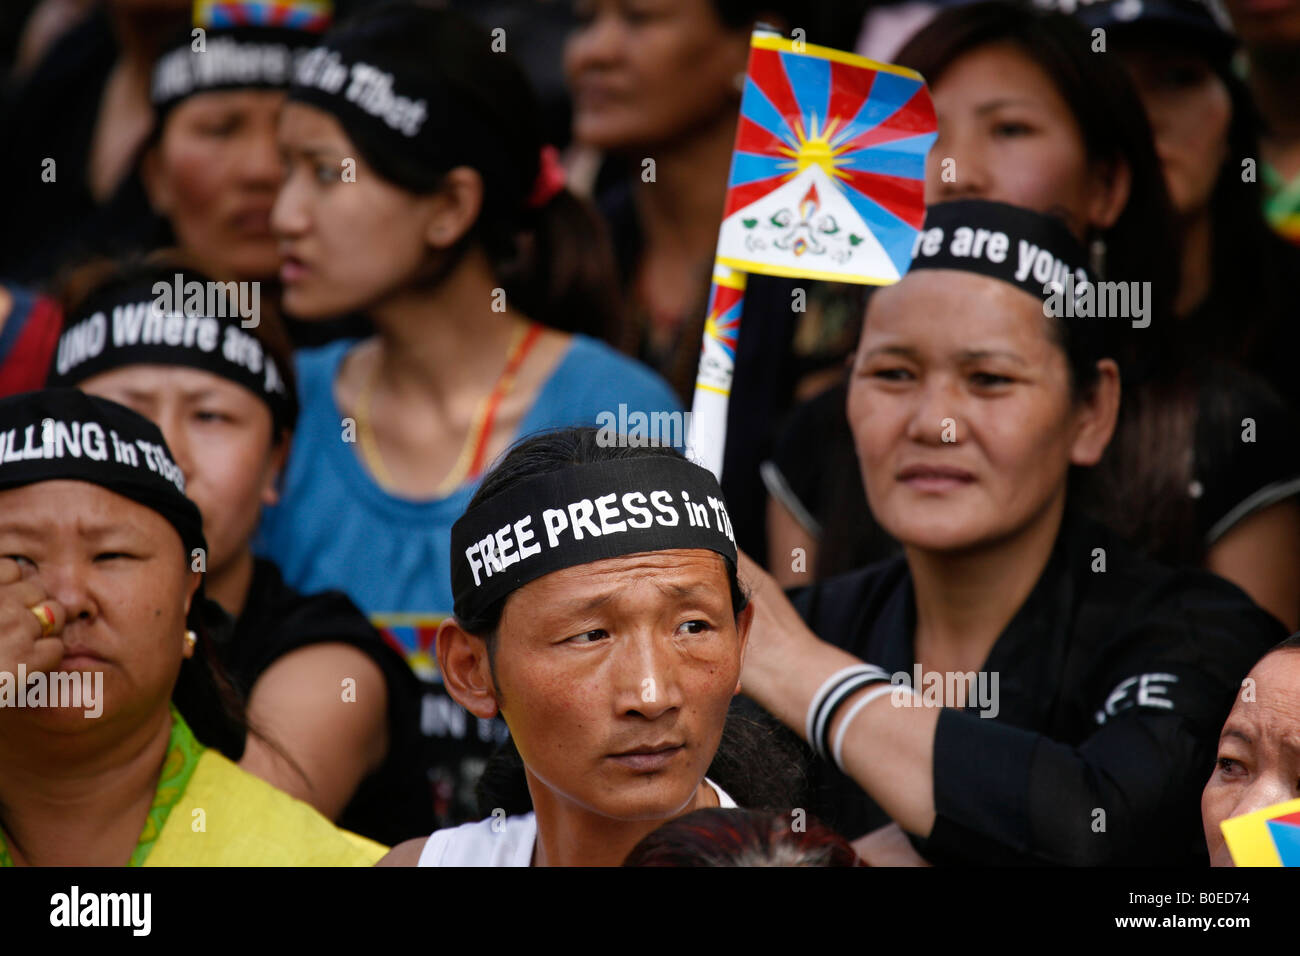 'Stop the Torture' and 'Free Press in Tibet' say the signs on the headbands of Tibetan protesters - Stock Image